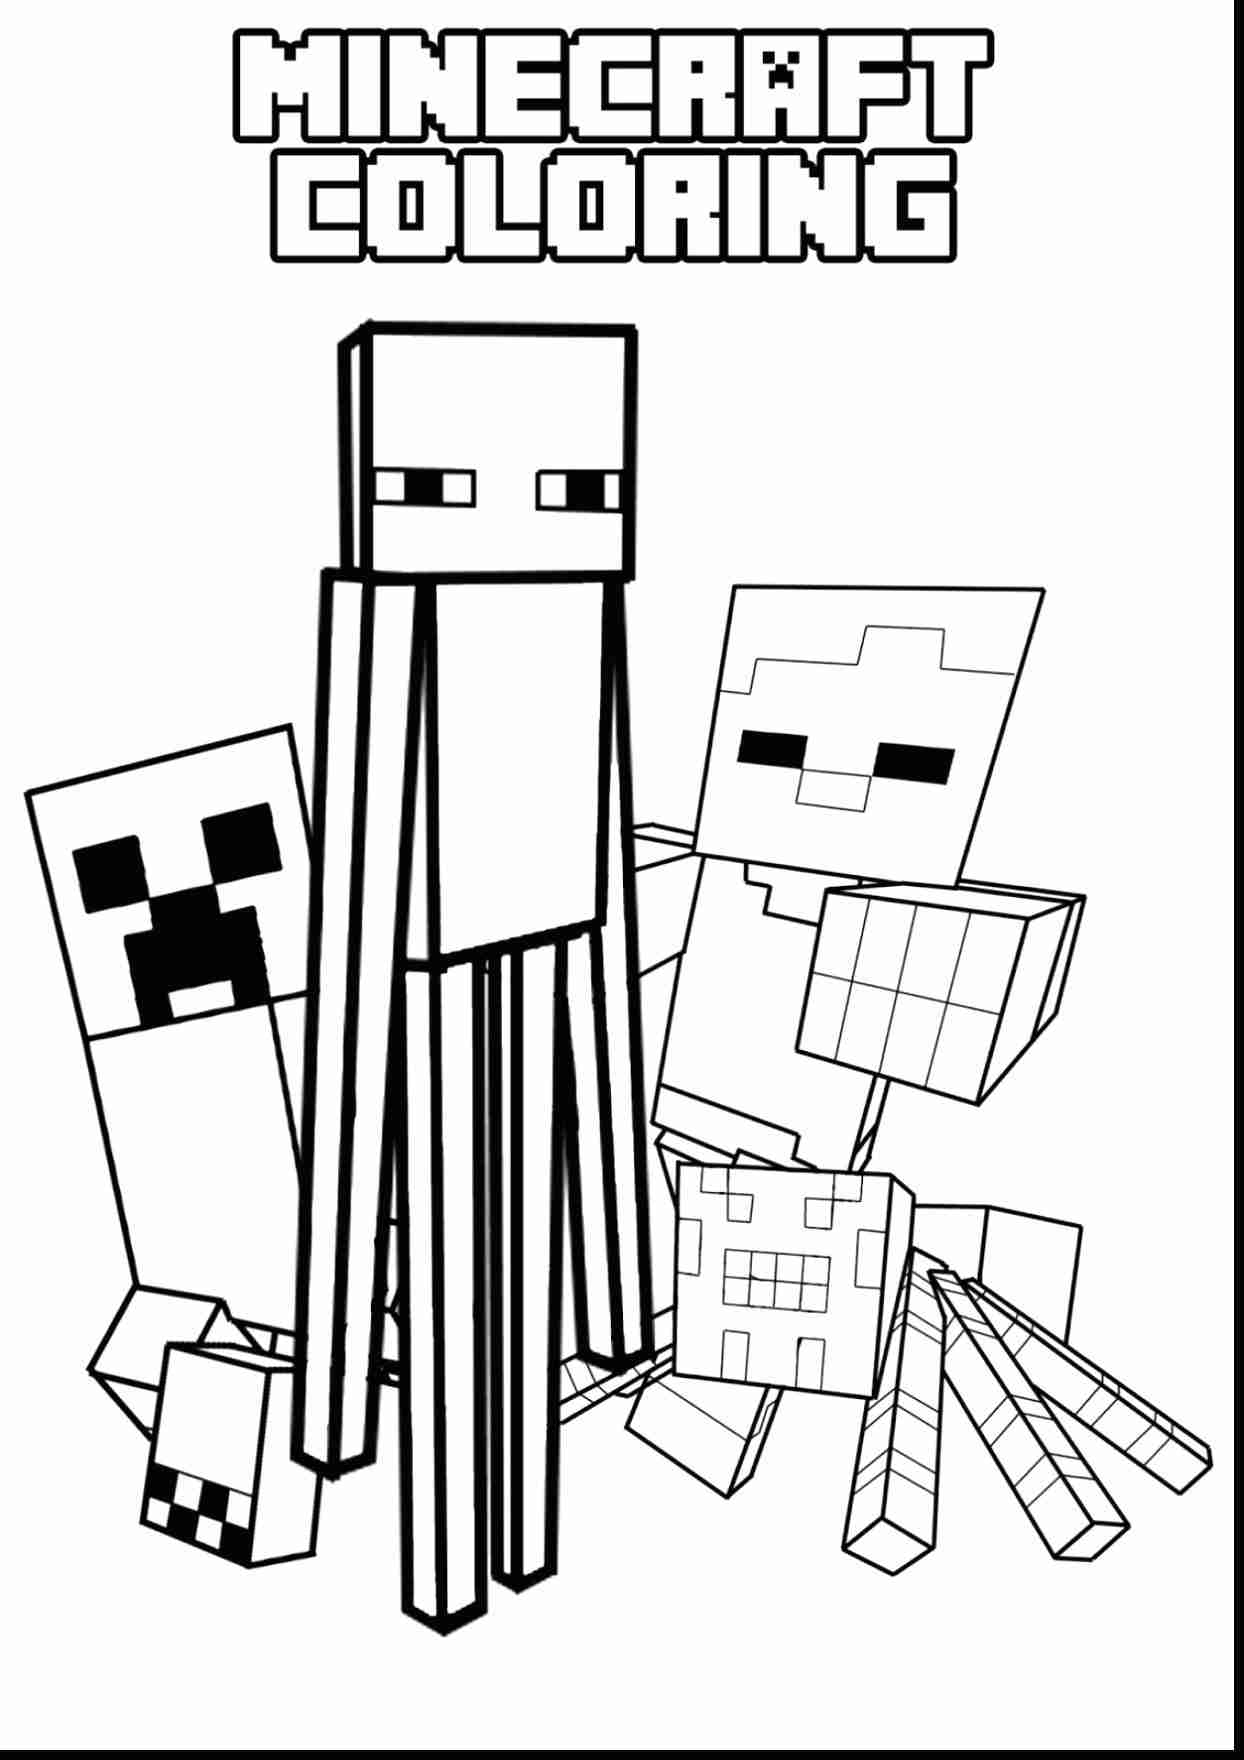 creeper coloring pages minecraft steve creeper enderman free printable coloring coloring pages creeper